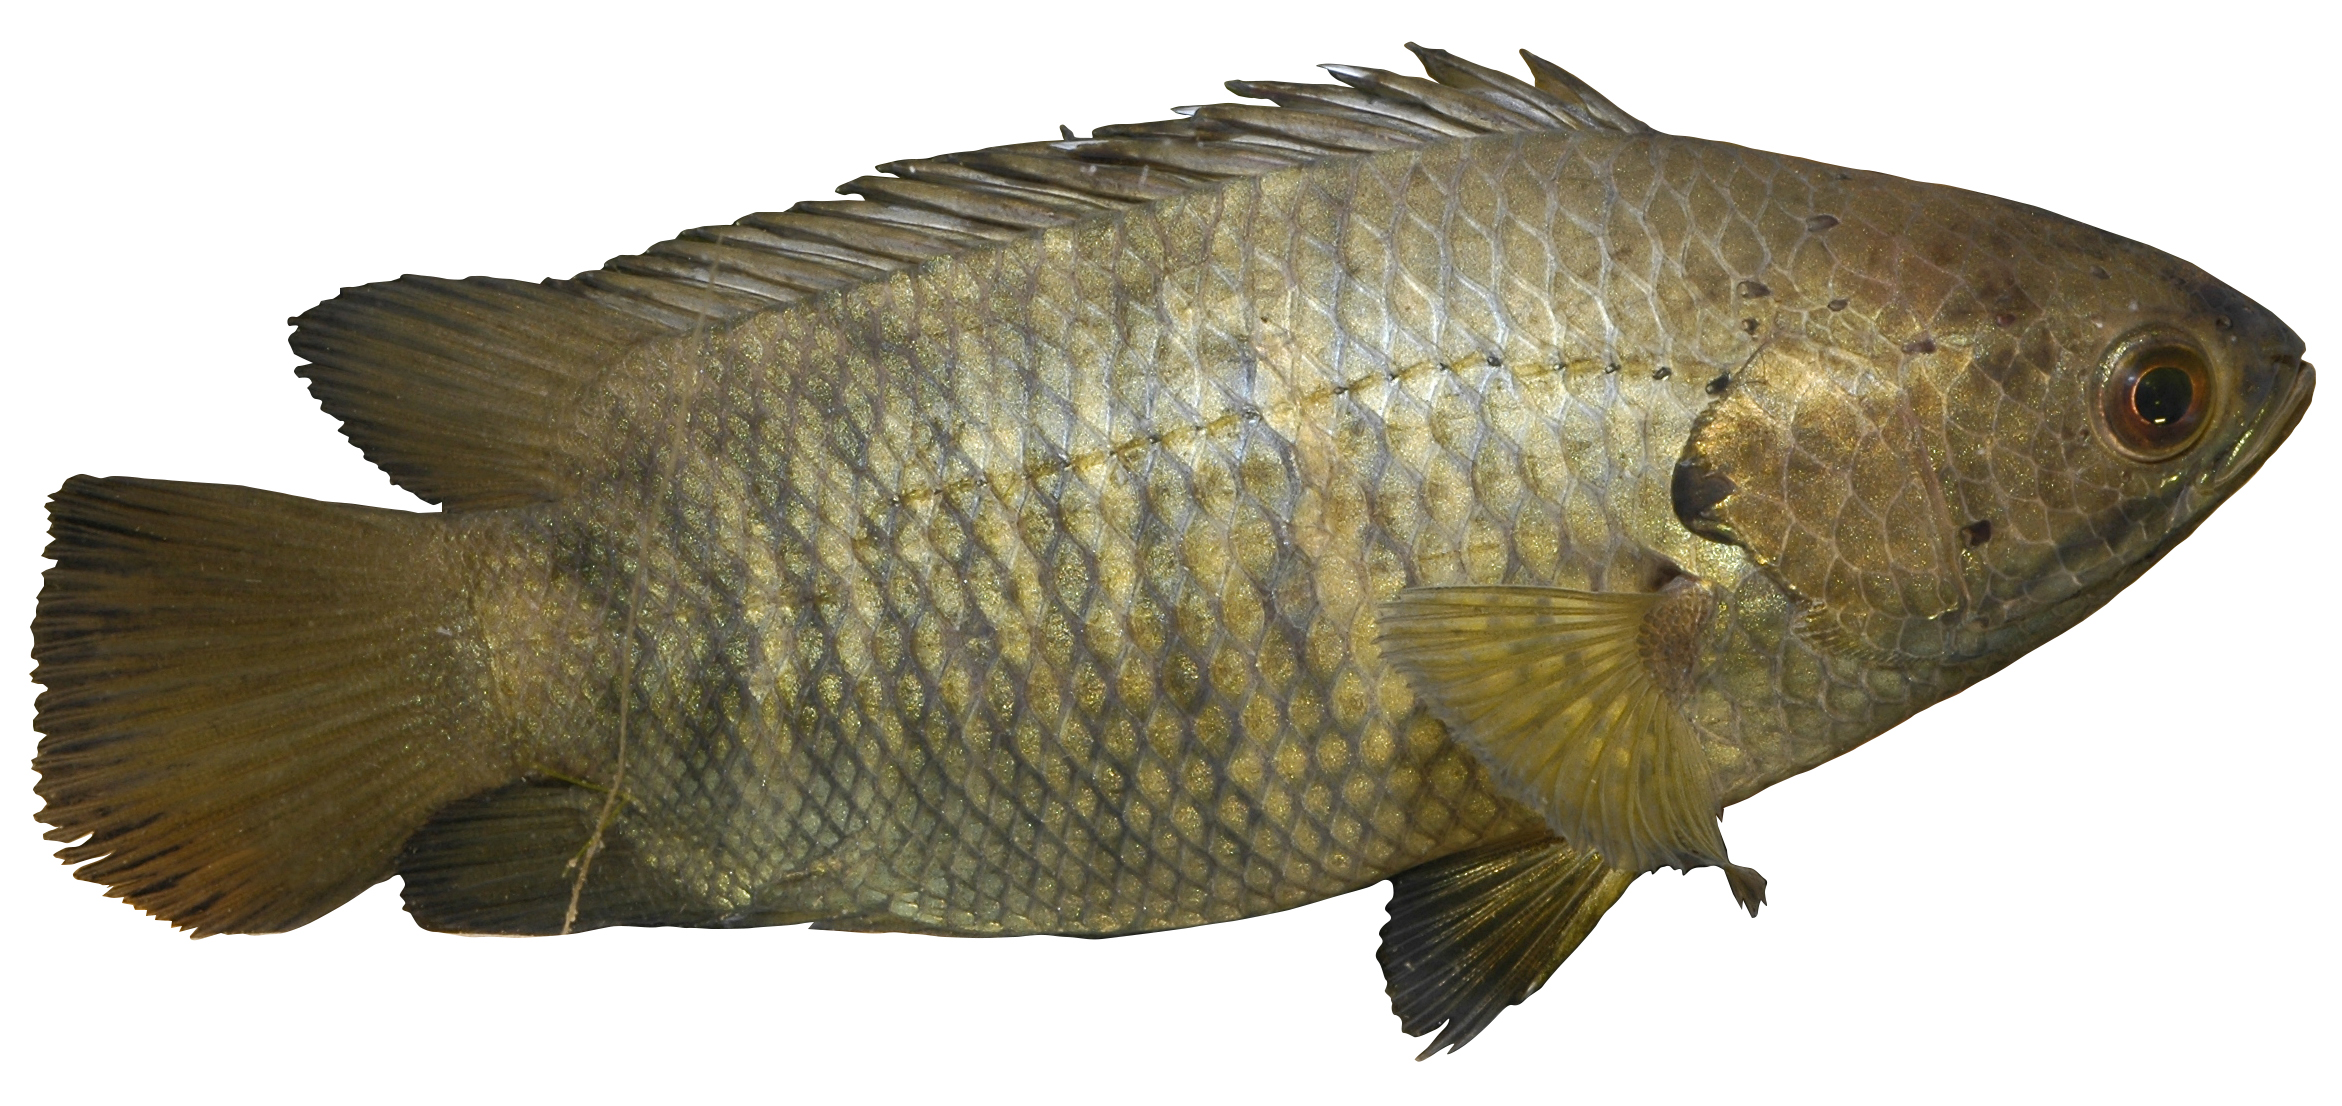 Climbing perch: restricted noxious fish